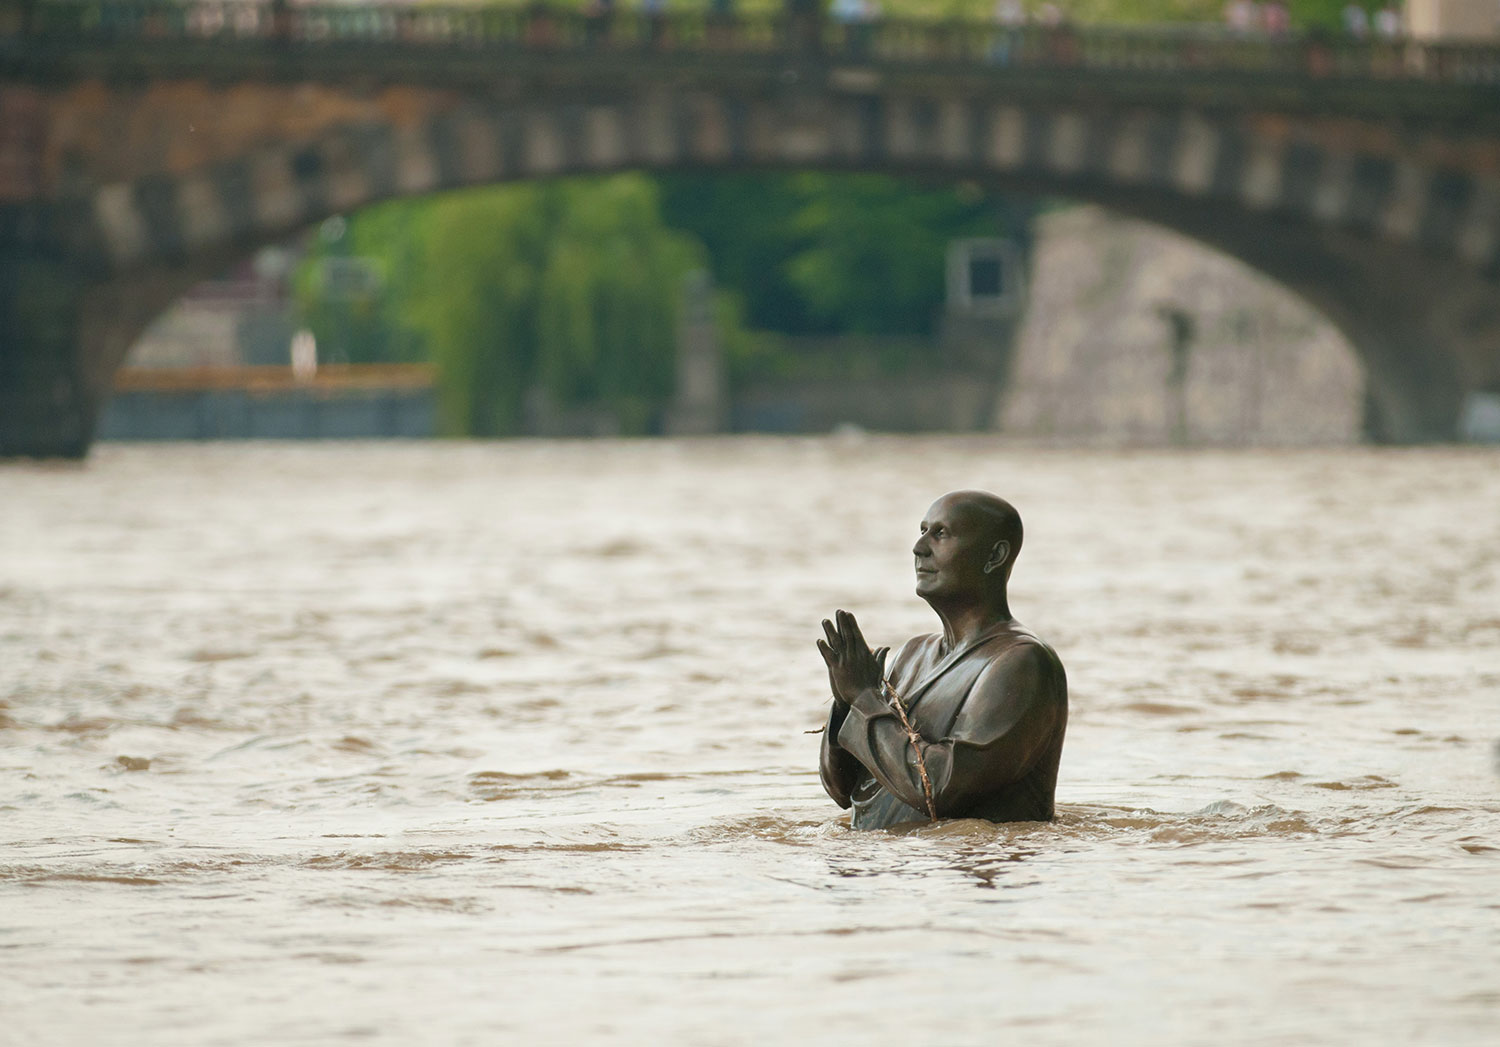 Statue-of-Sri-Chinmoy-flooded-in-Prague-2-Apaguha-Vesely